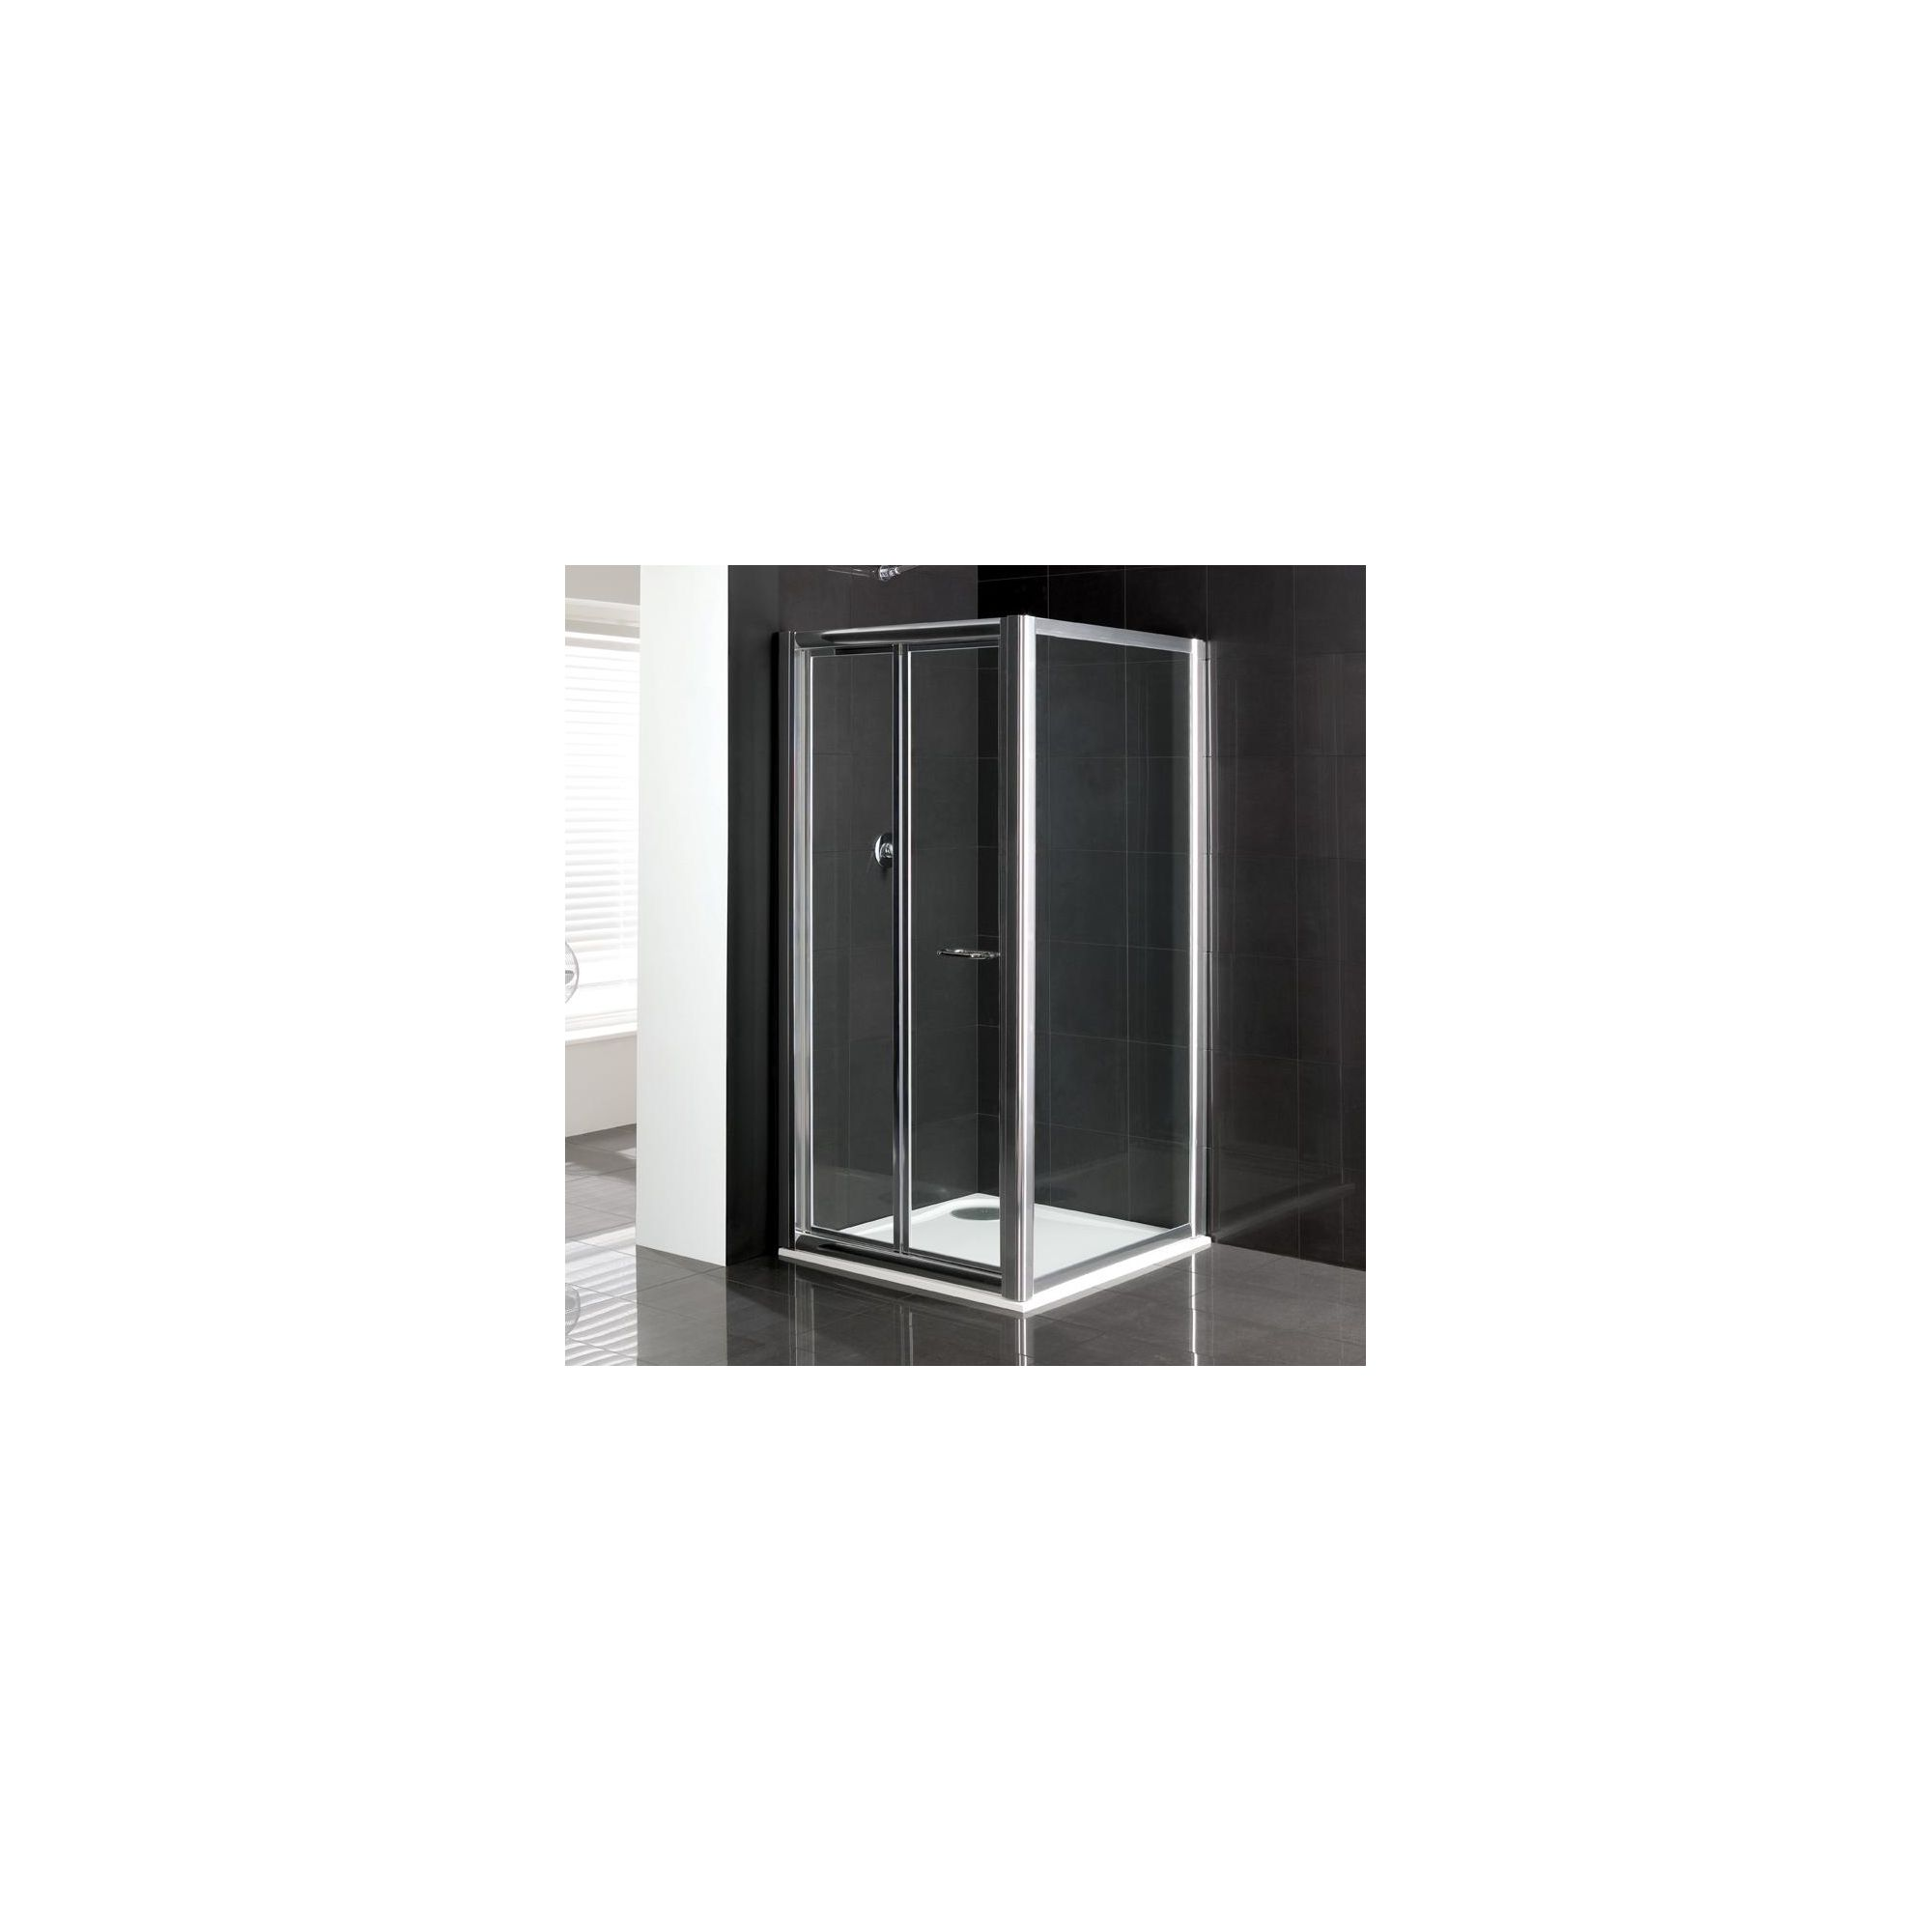 Duchy Elite Silver Bi-Fold Door Shower Enclosure, 900mm x 700mm, Standard Tray, 6mm Glass at Tescos Direct